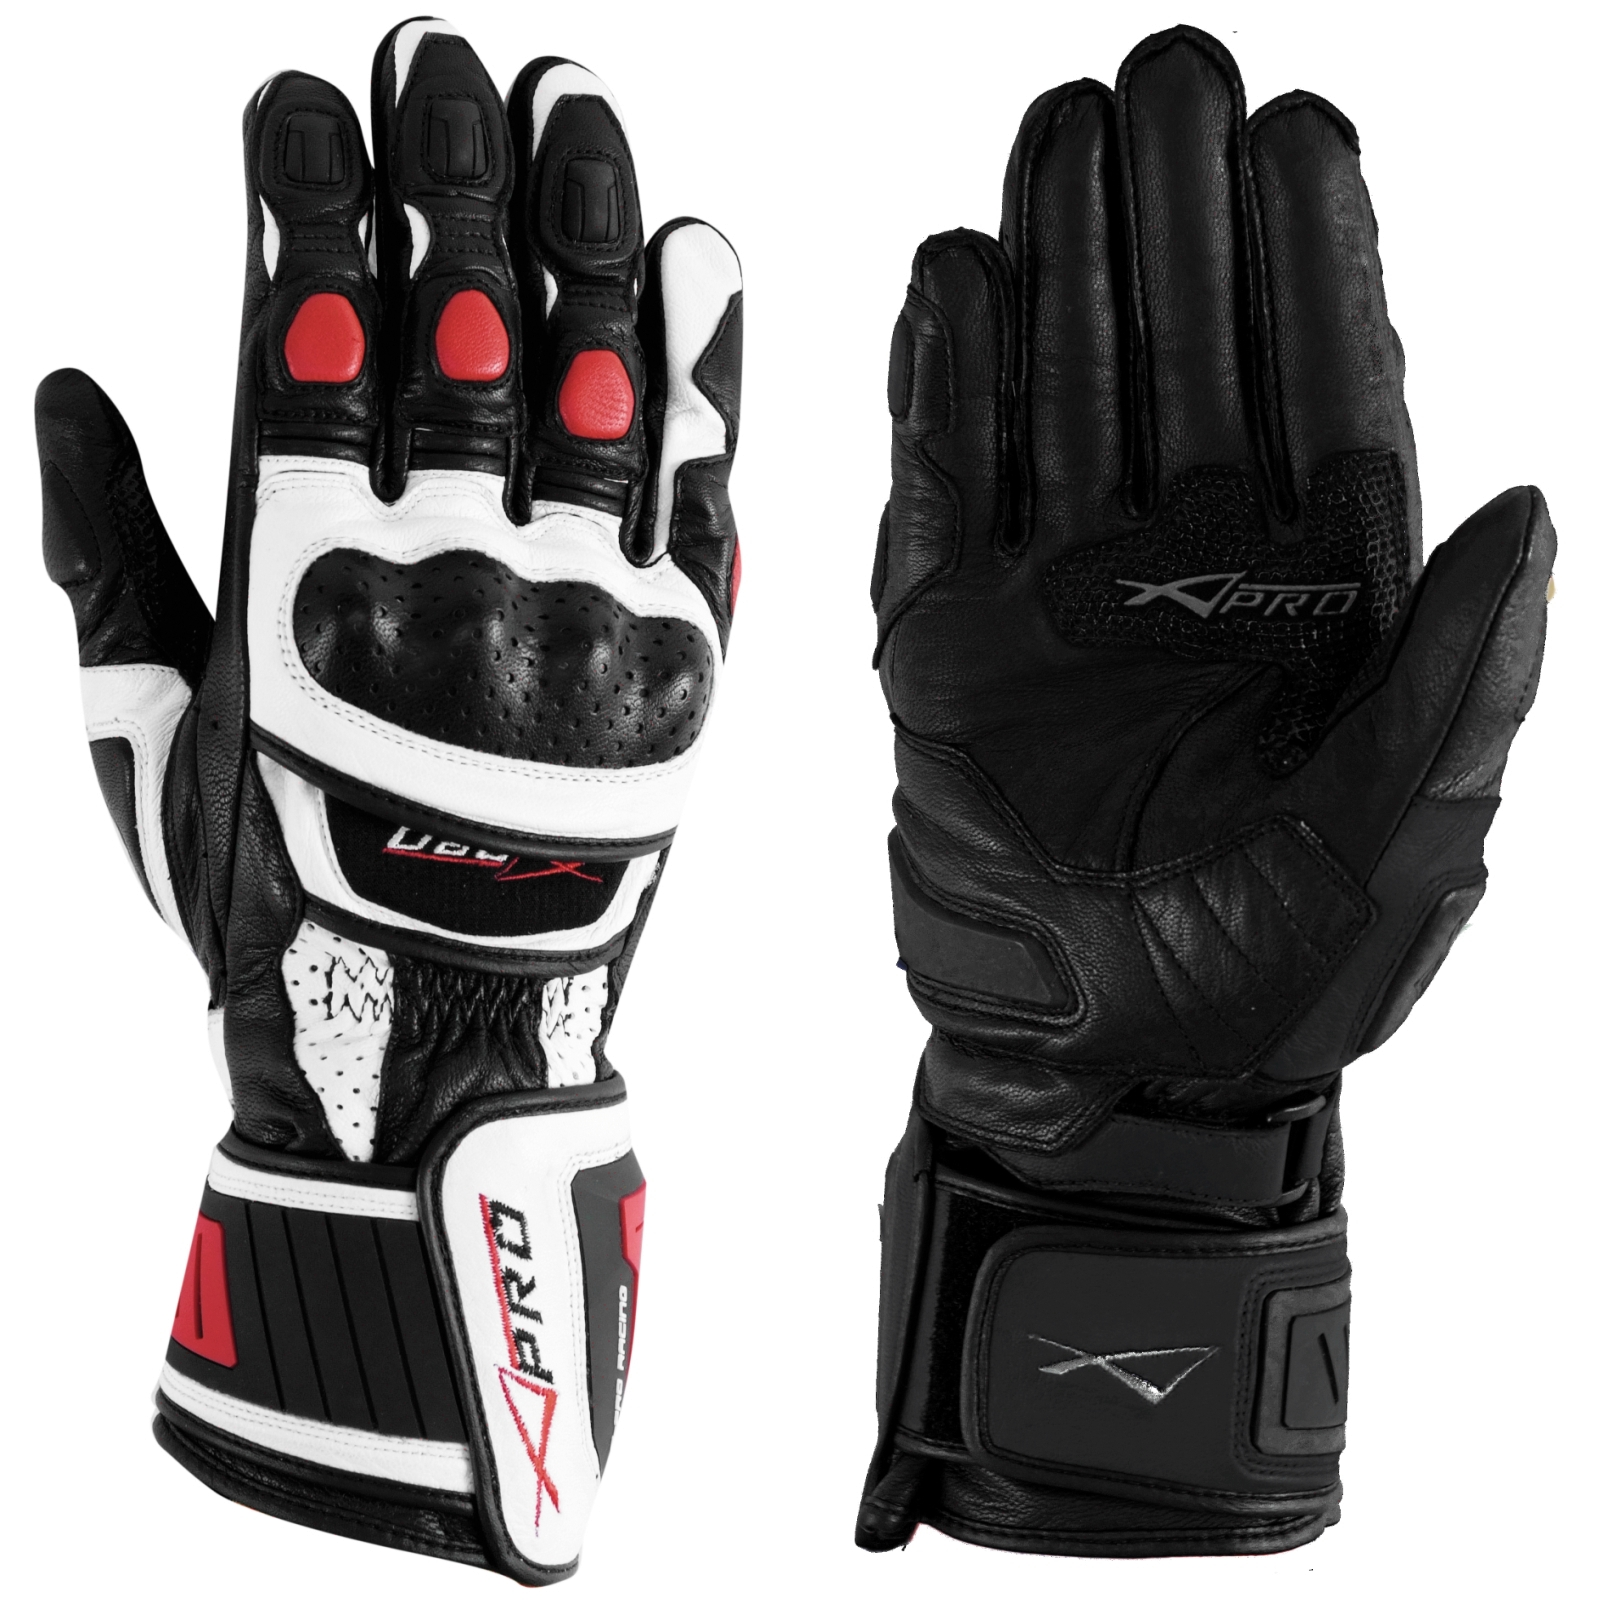 sport piste racing gants moto motard cuir protections phalanges renforces. Black Bedroom Furniture Sets. Home Design Ideas